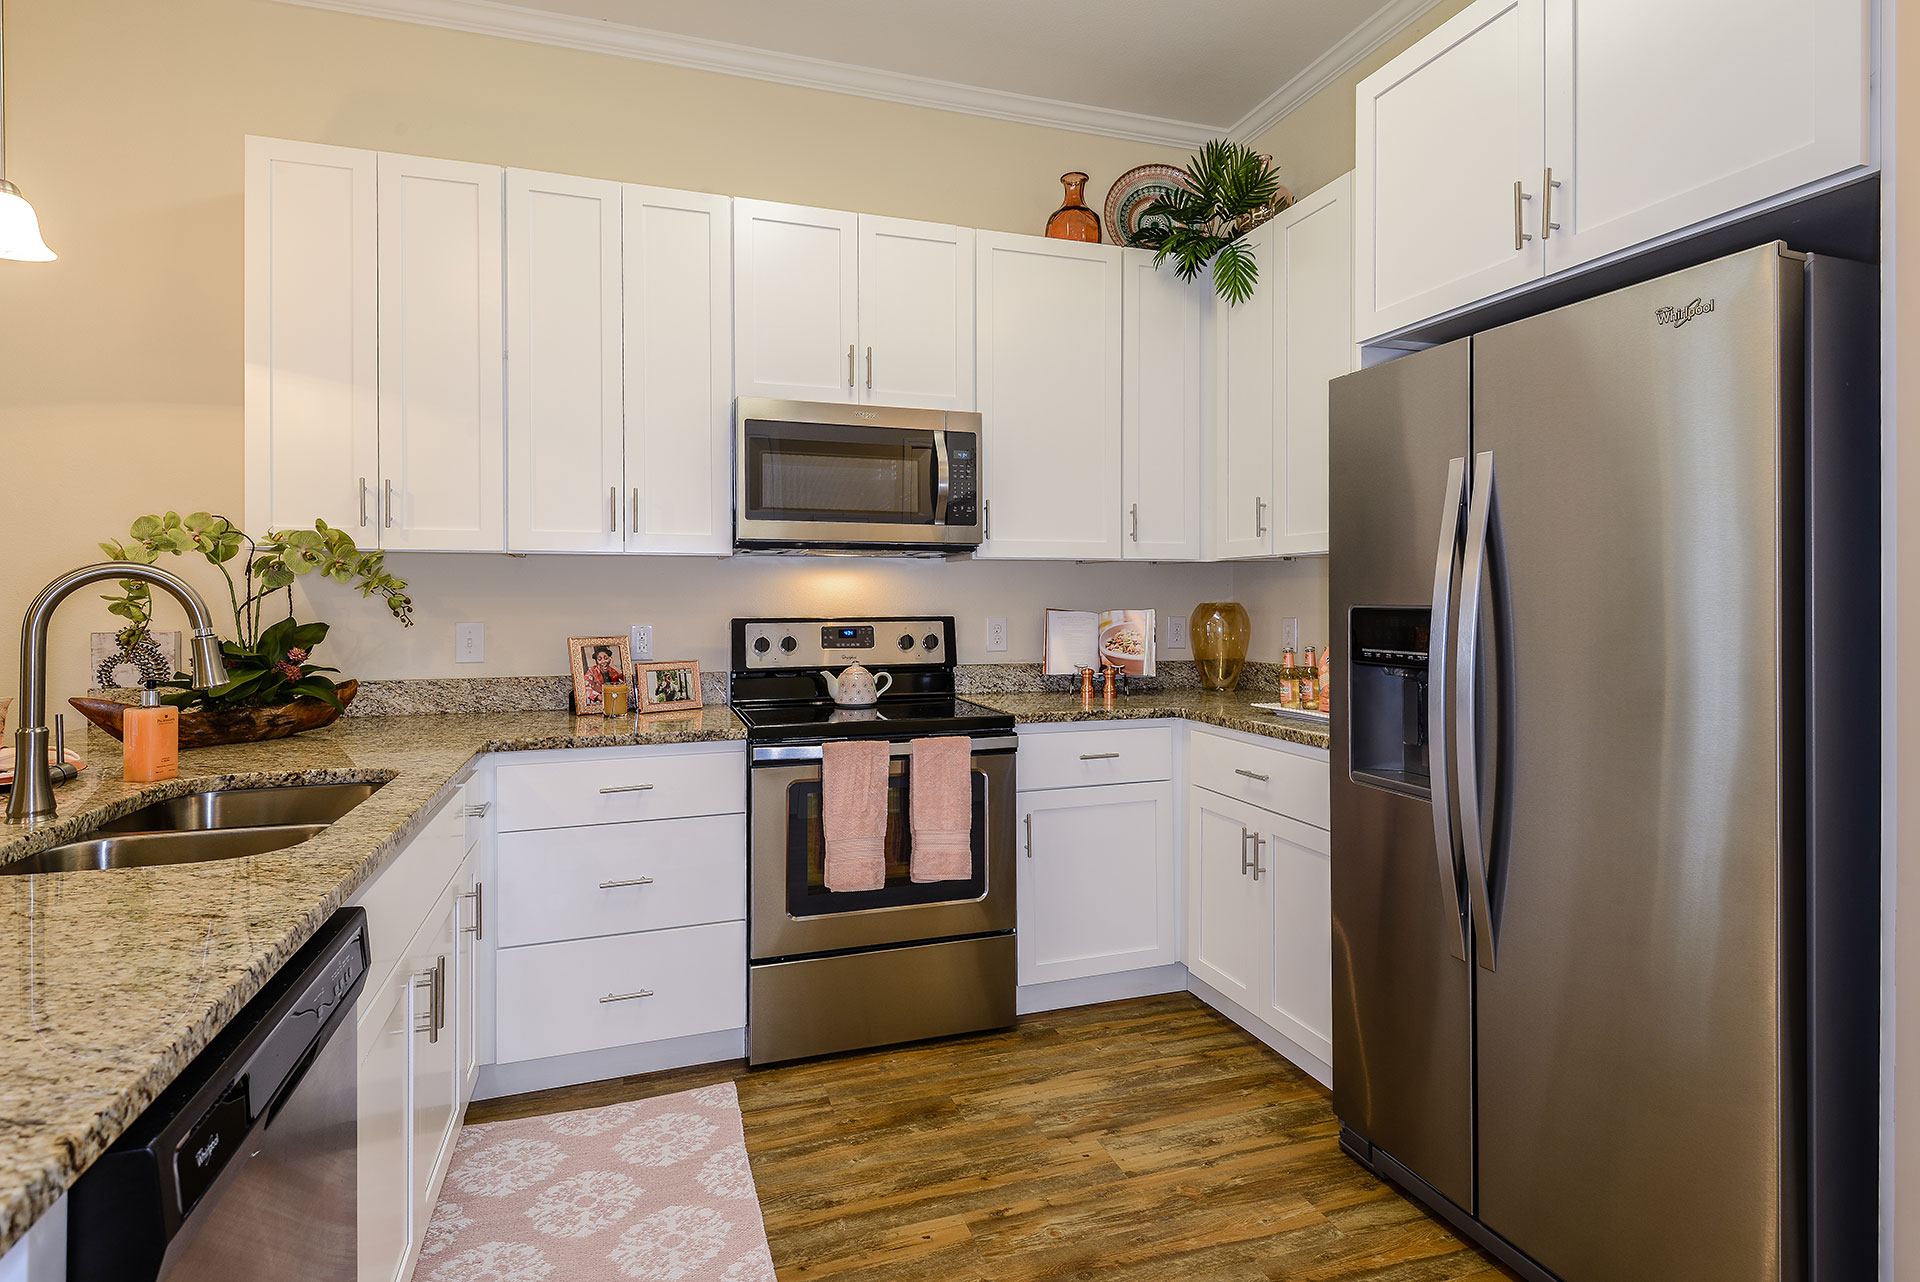 Example kitchen area with pink decor and wooden floors